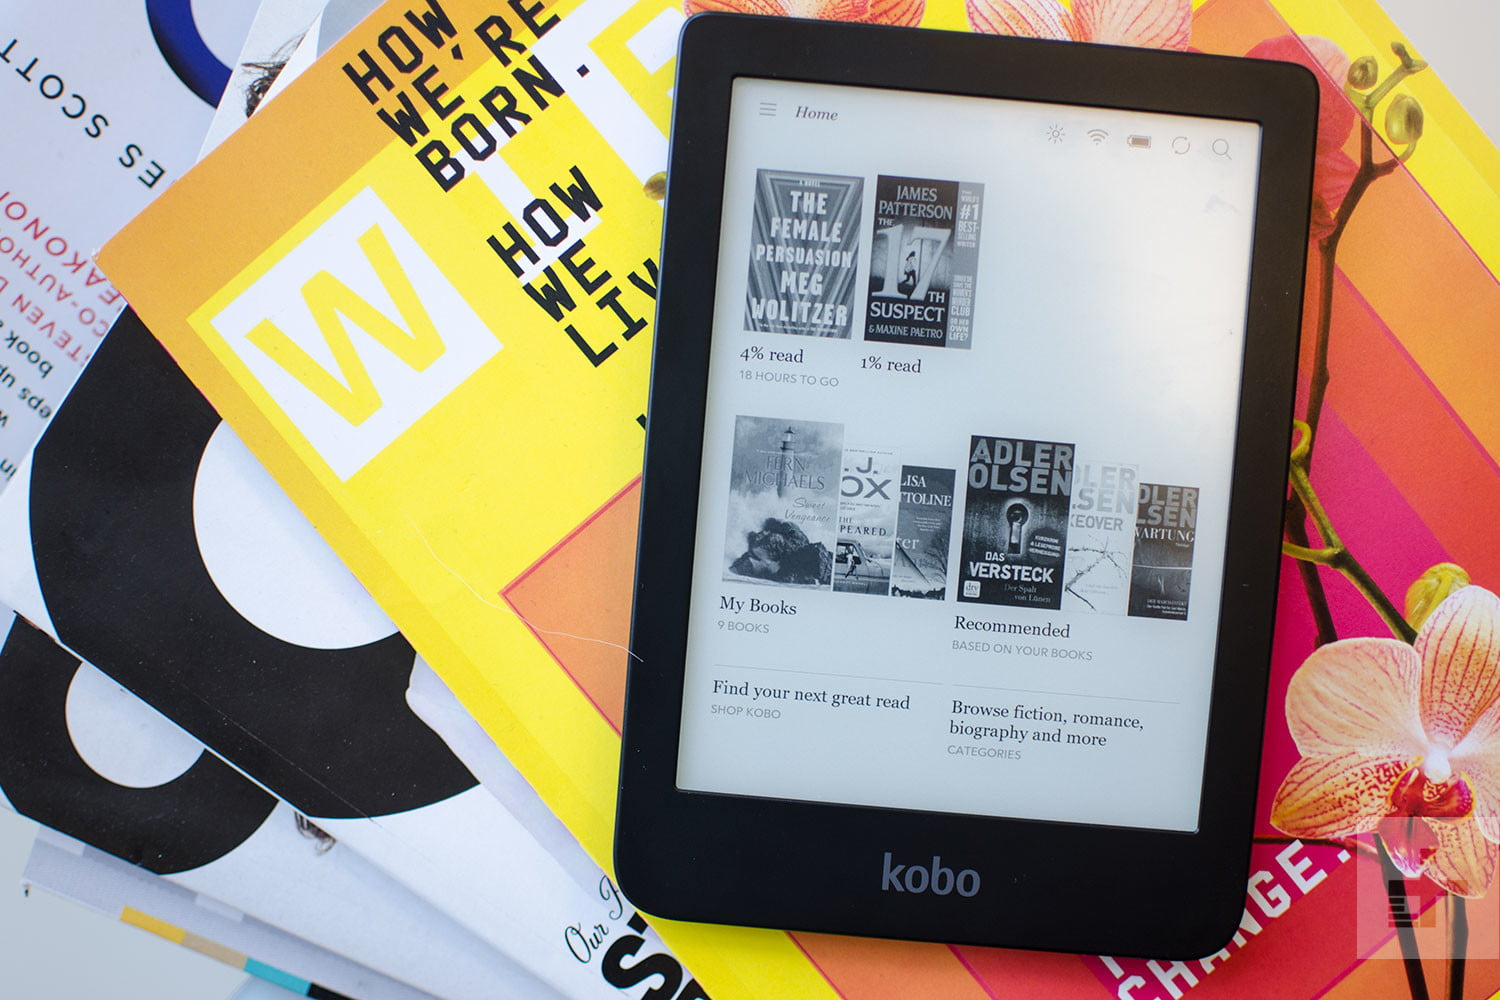 The Kobo Clara HD, one of the best Kindle alternatives, is now on sale